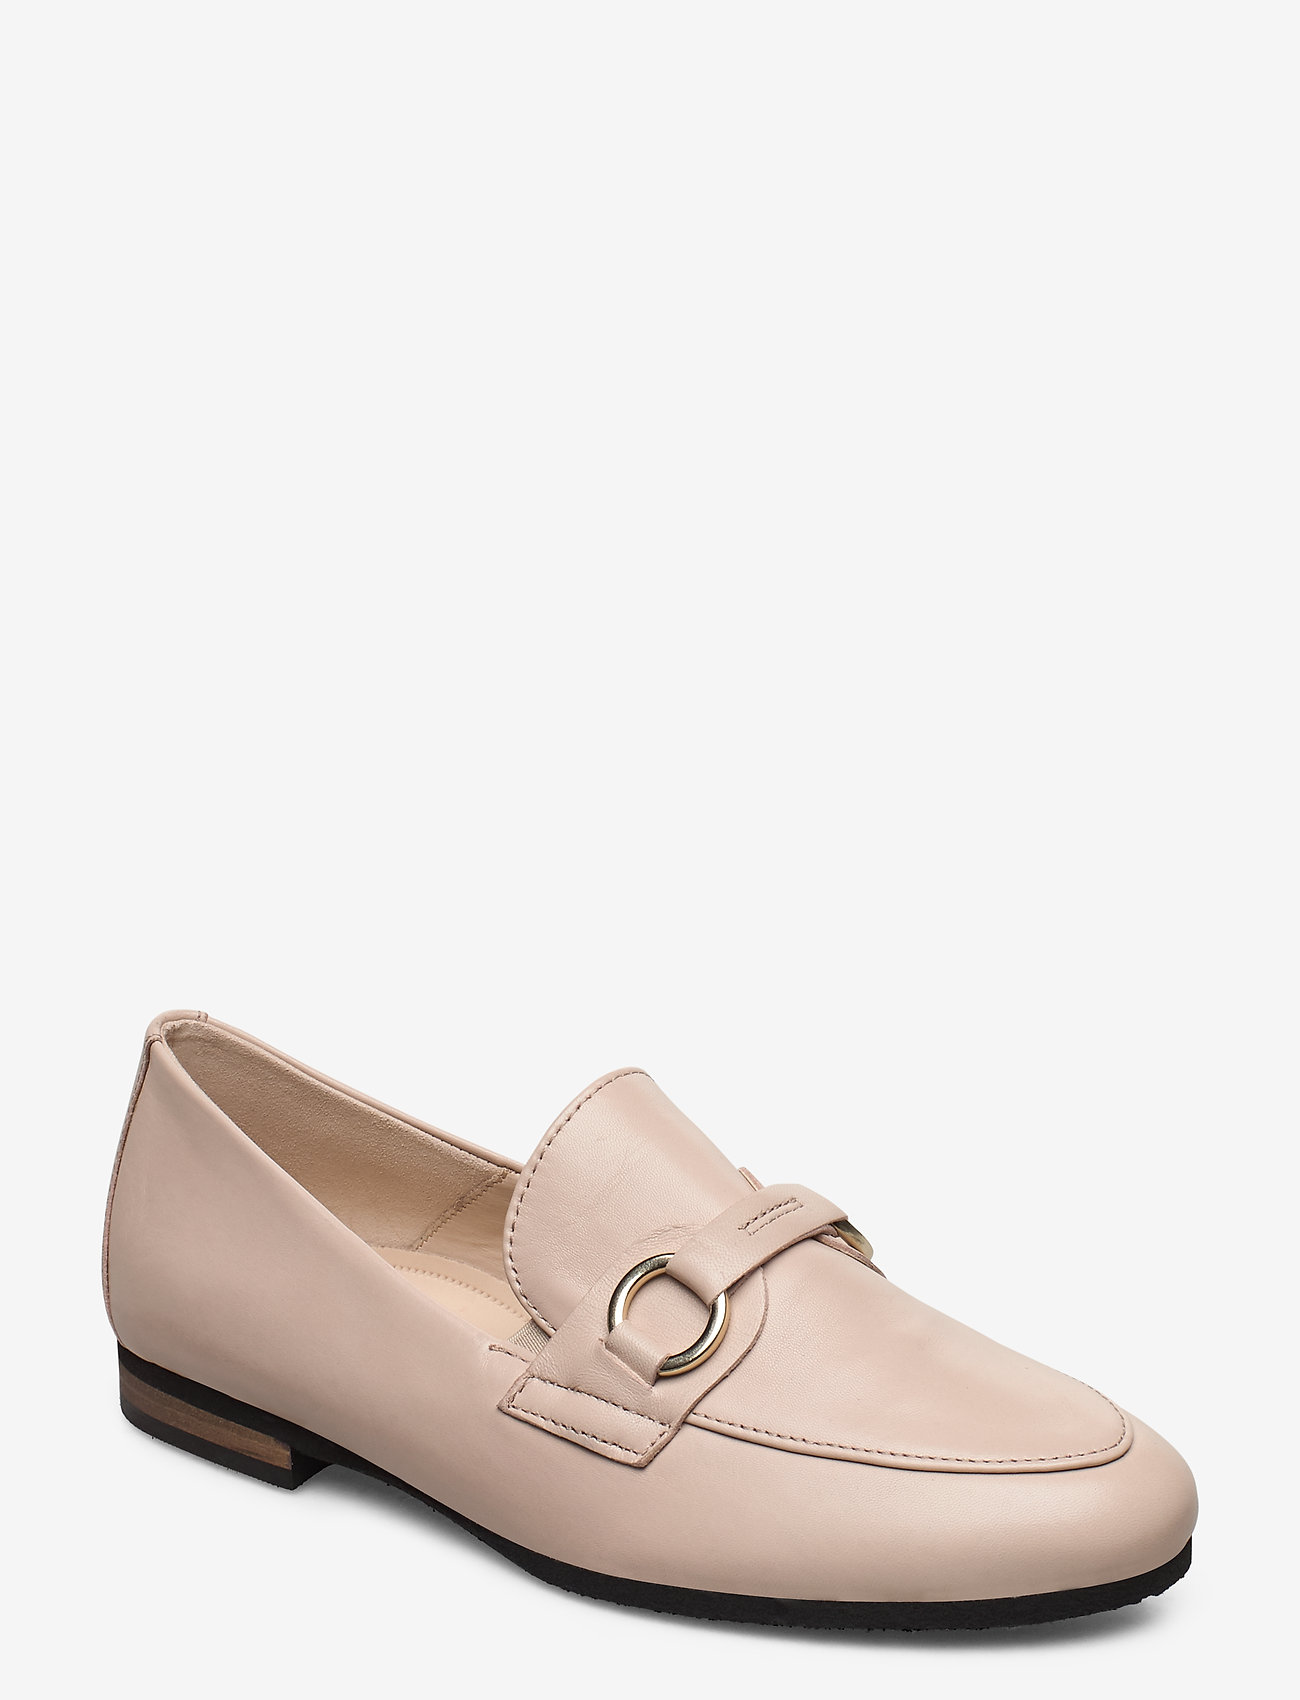 Gabor - slip on - loafers - other colour - 0